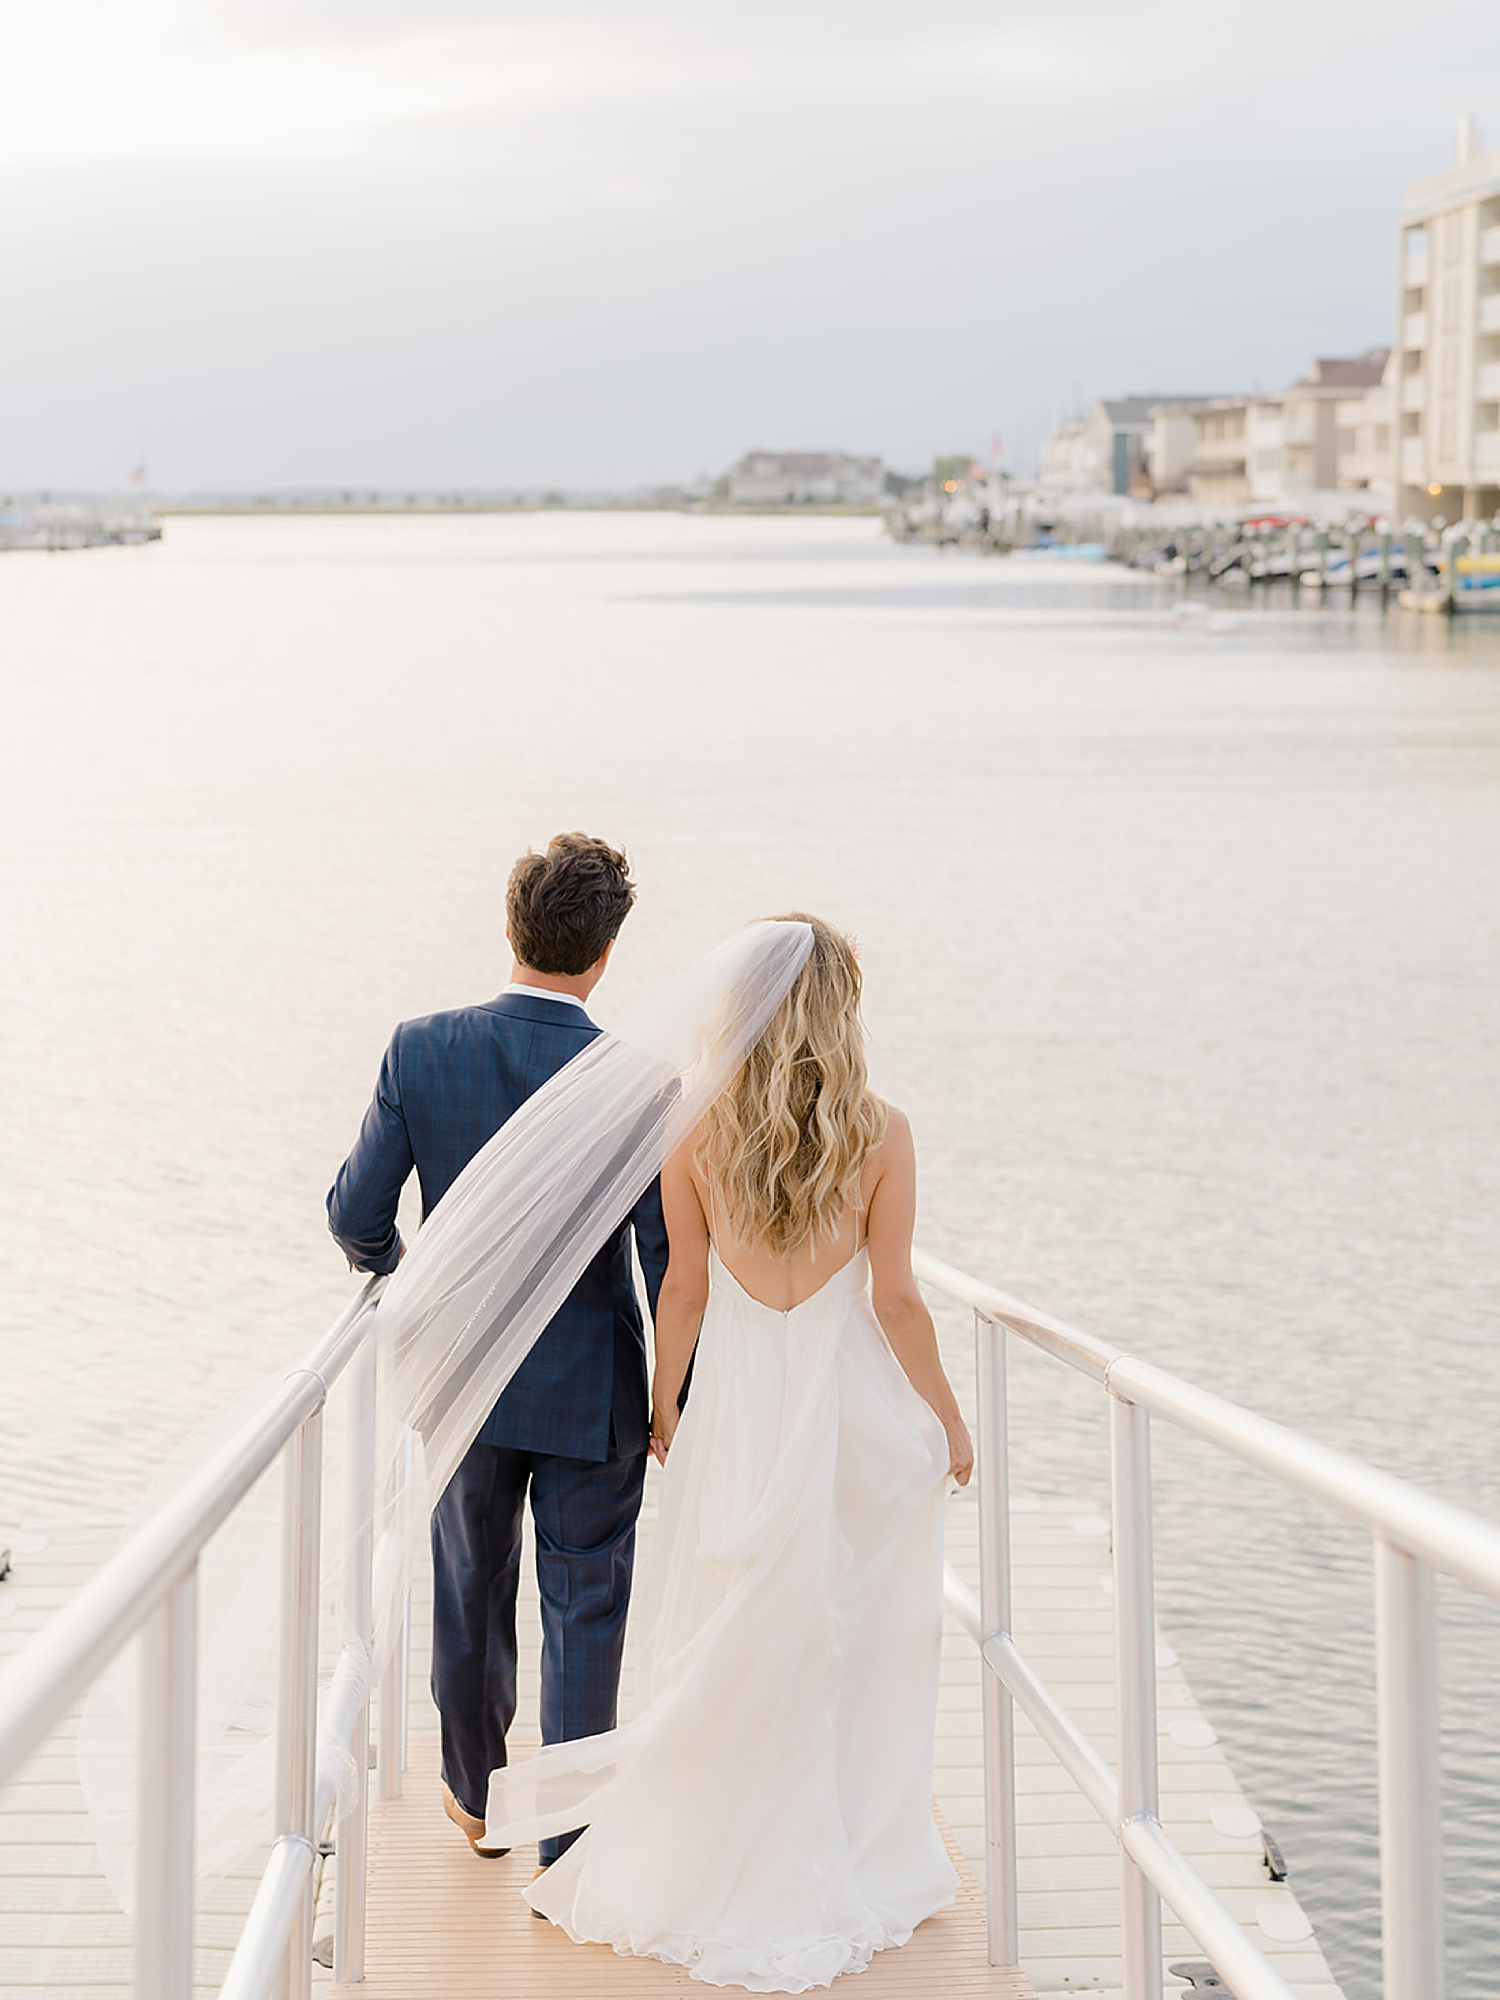 The Reeds at Shelter Haven Wedding Photography by Magdalena Studios 0020